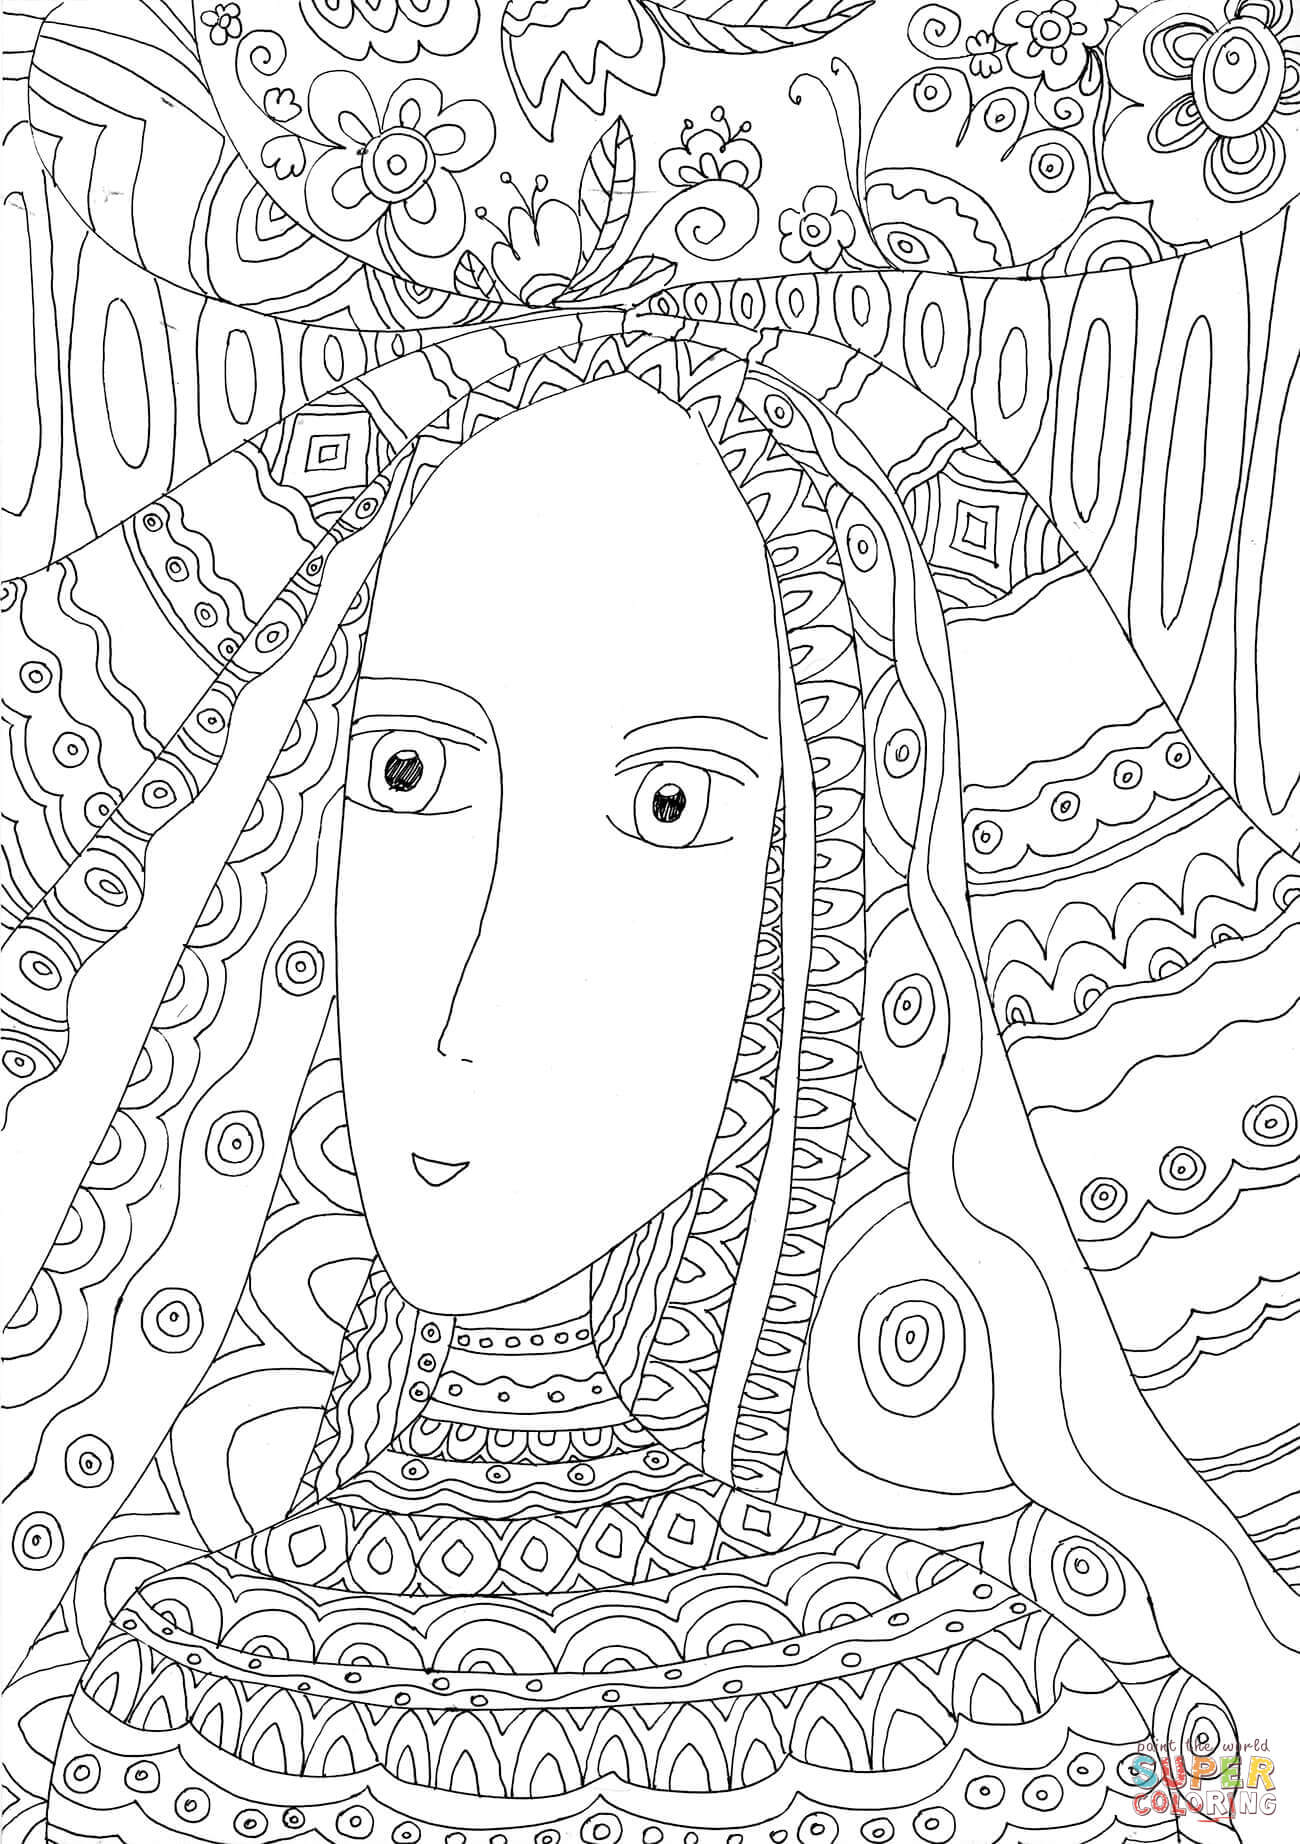 picture of a girl to color school girl coloring page a free girls coloring printable picture of to girl color a